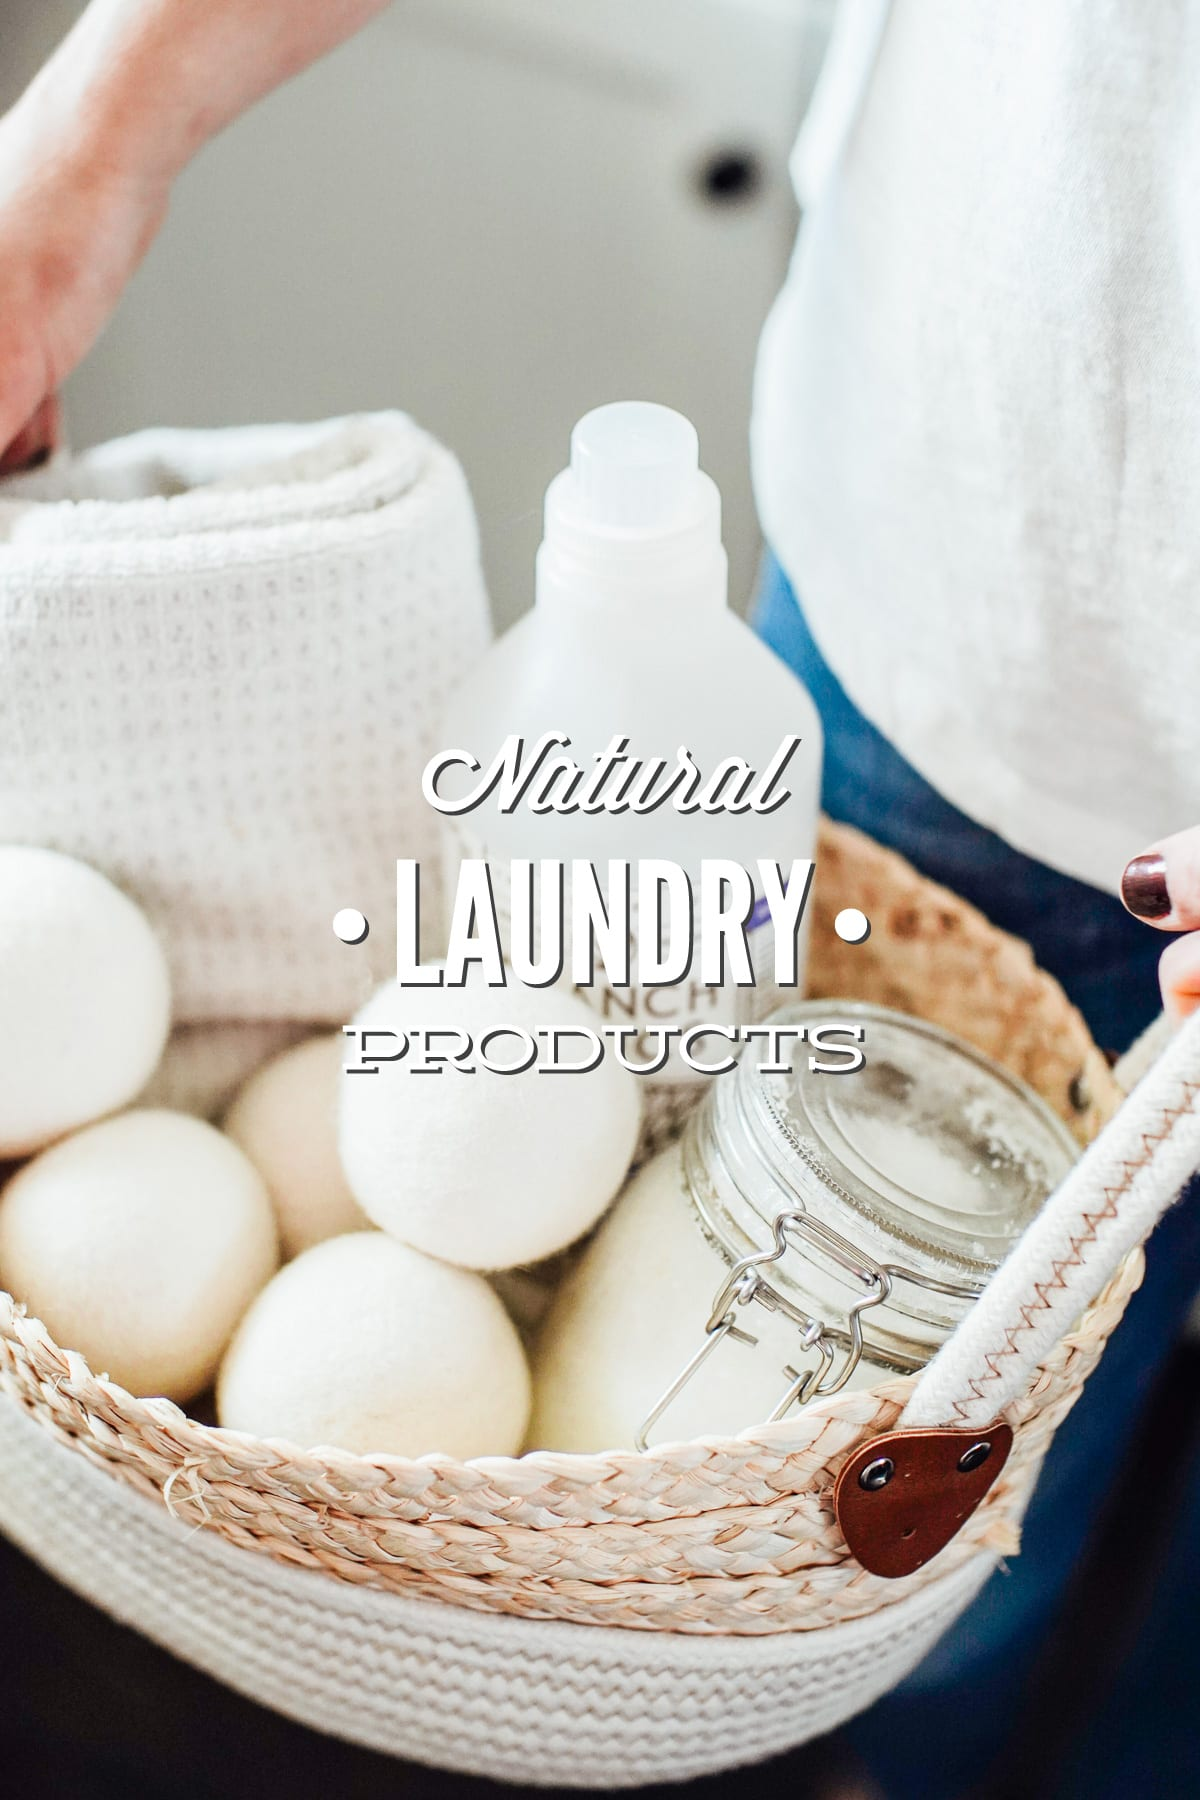 Natural Laundry Products: How to Go Natural With Every Product in Your Laundry Room